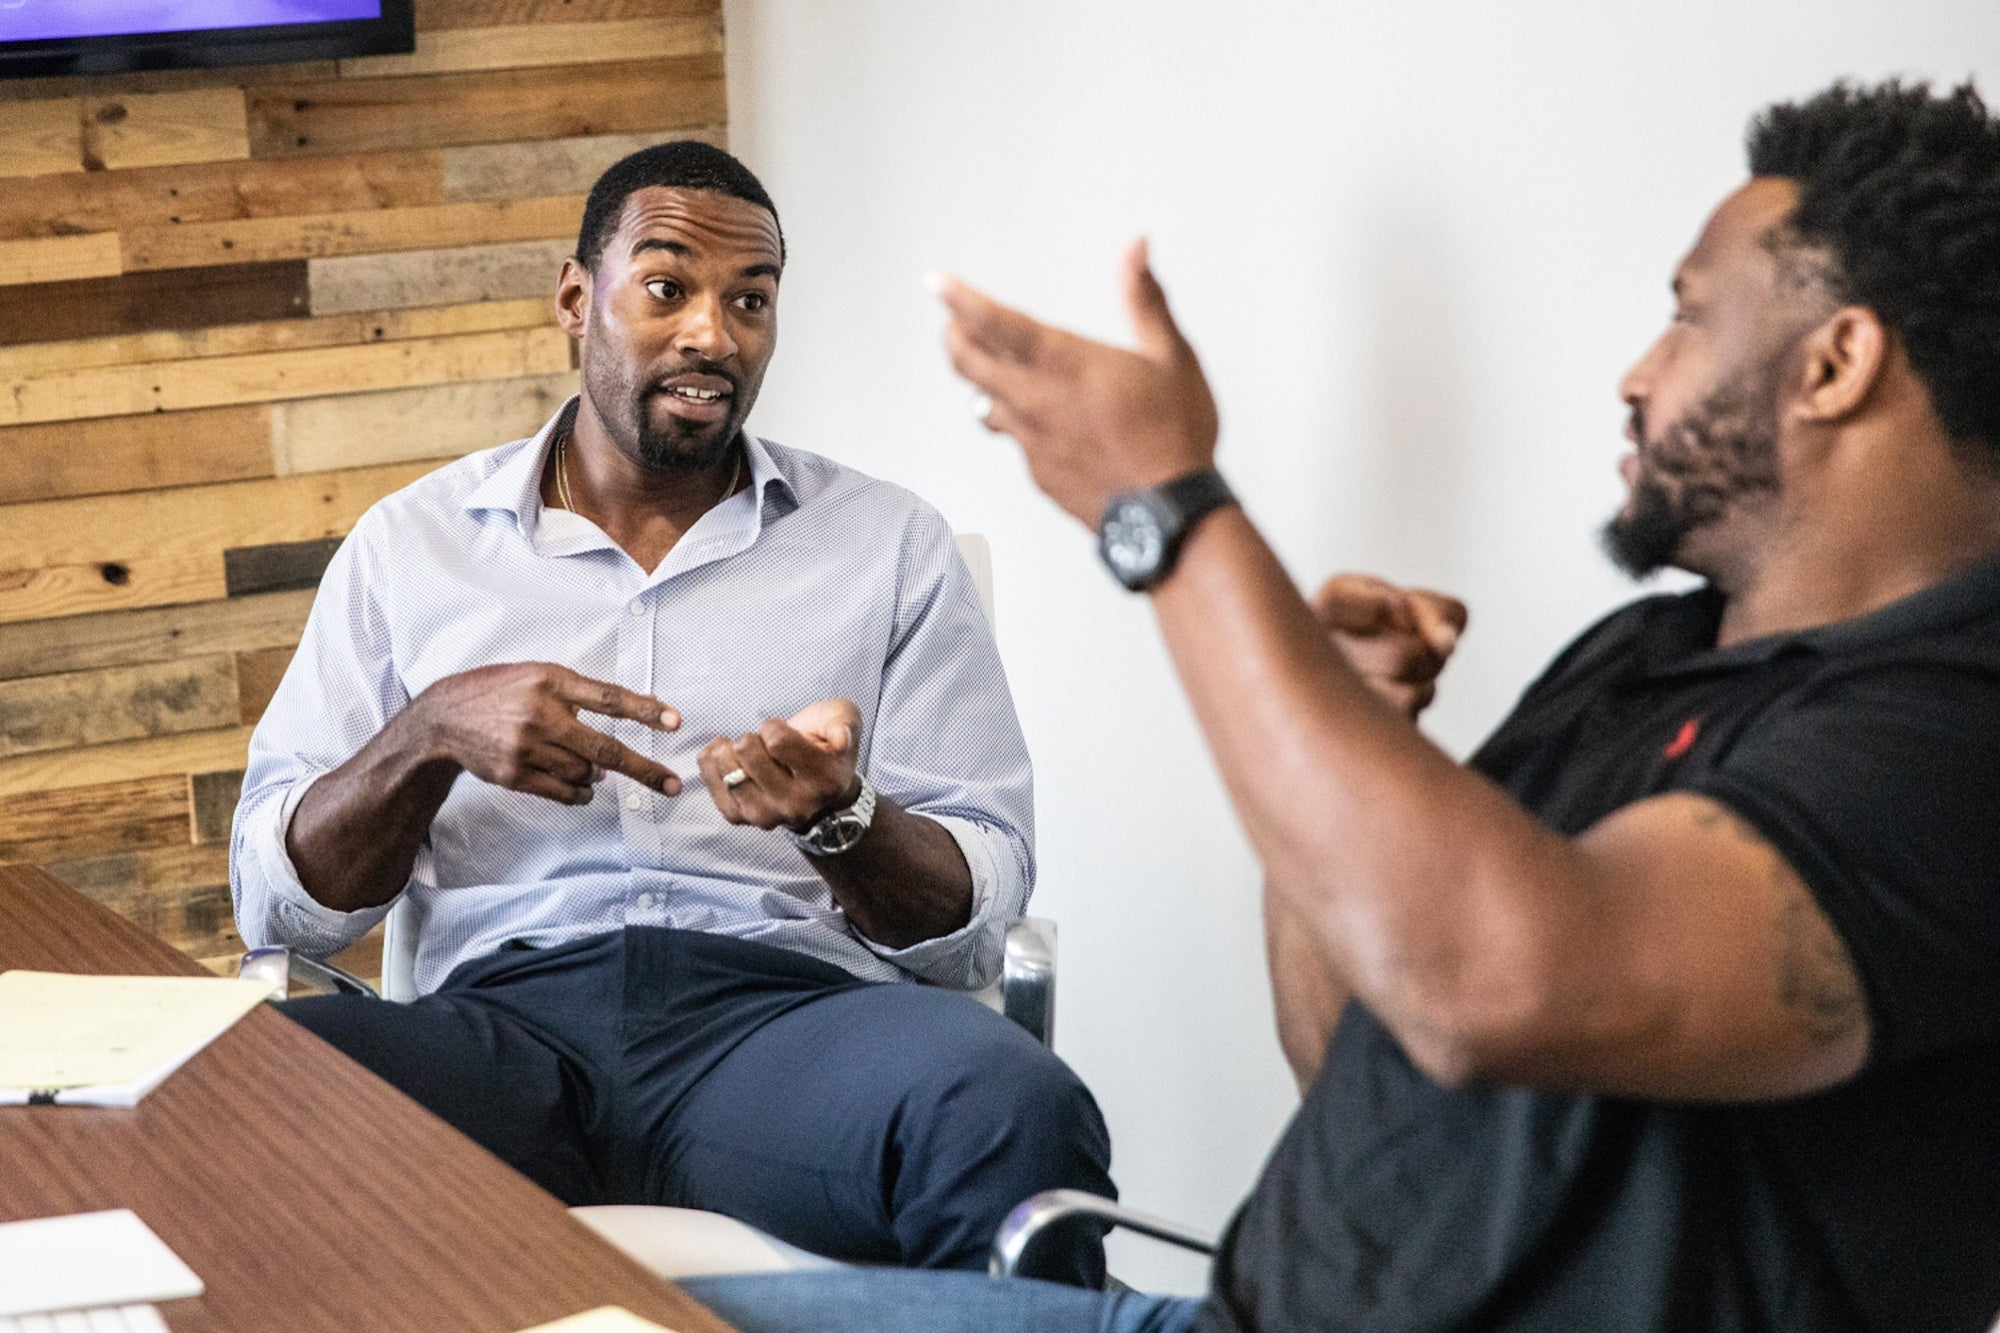 Former NFL Stars Want to Show How Cannabis Helps with Brain Injuries